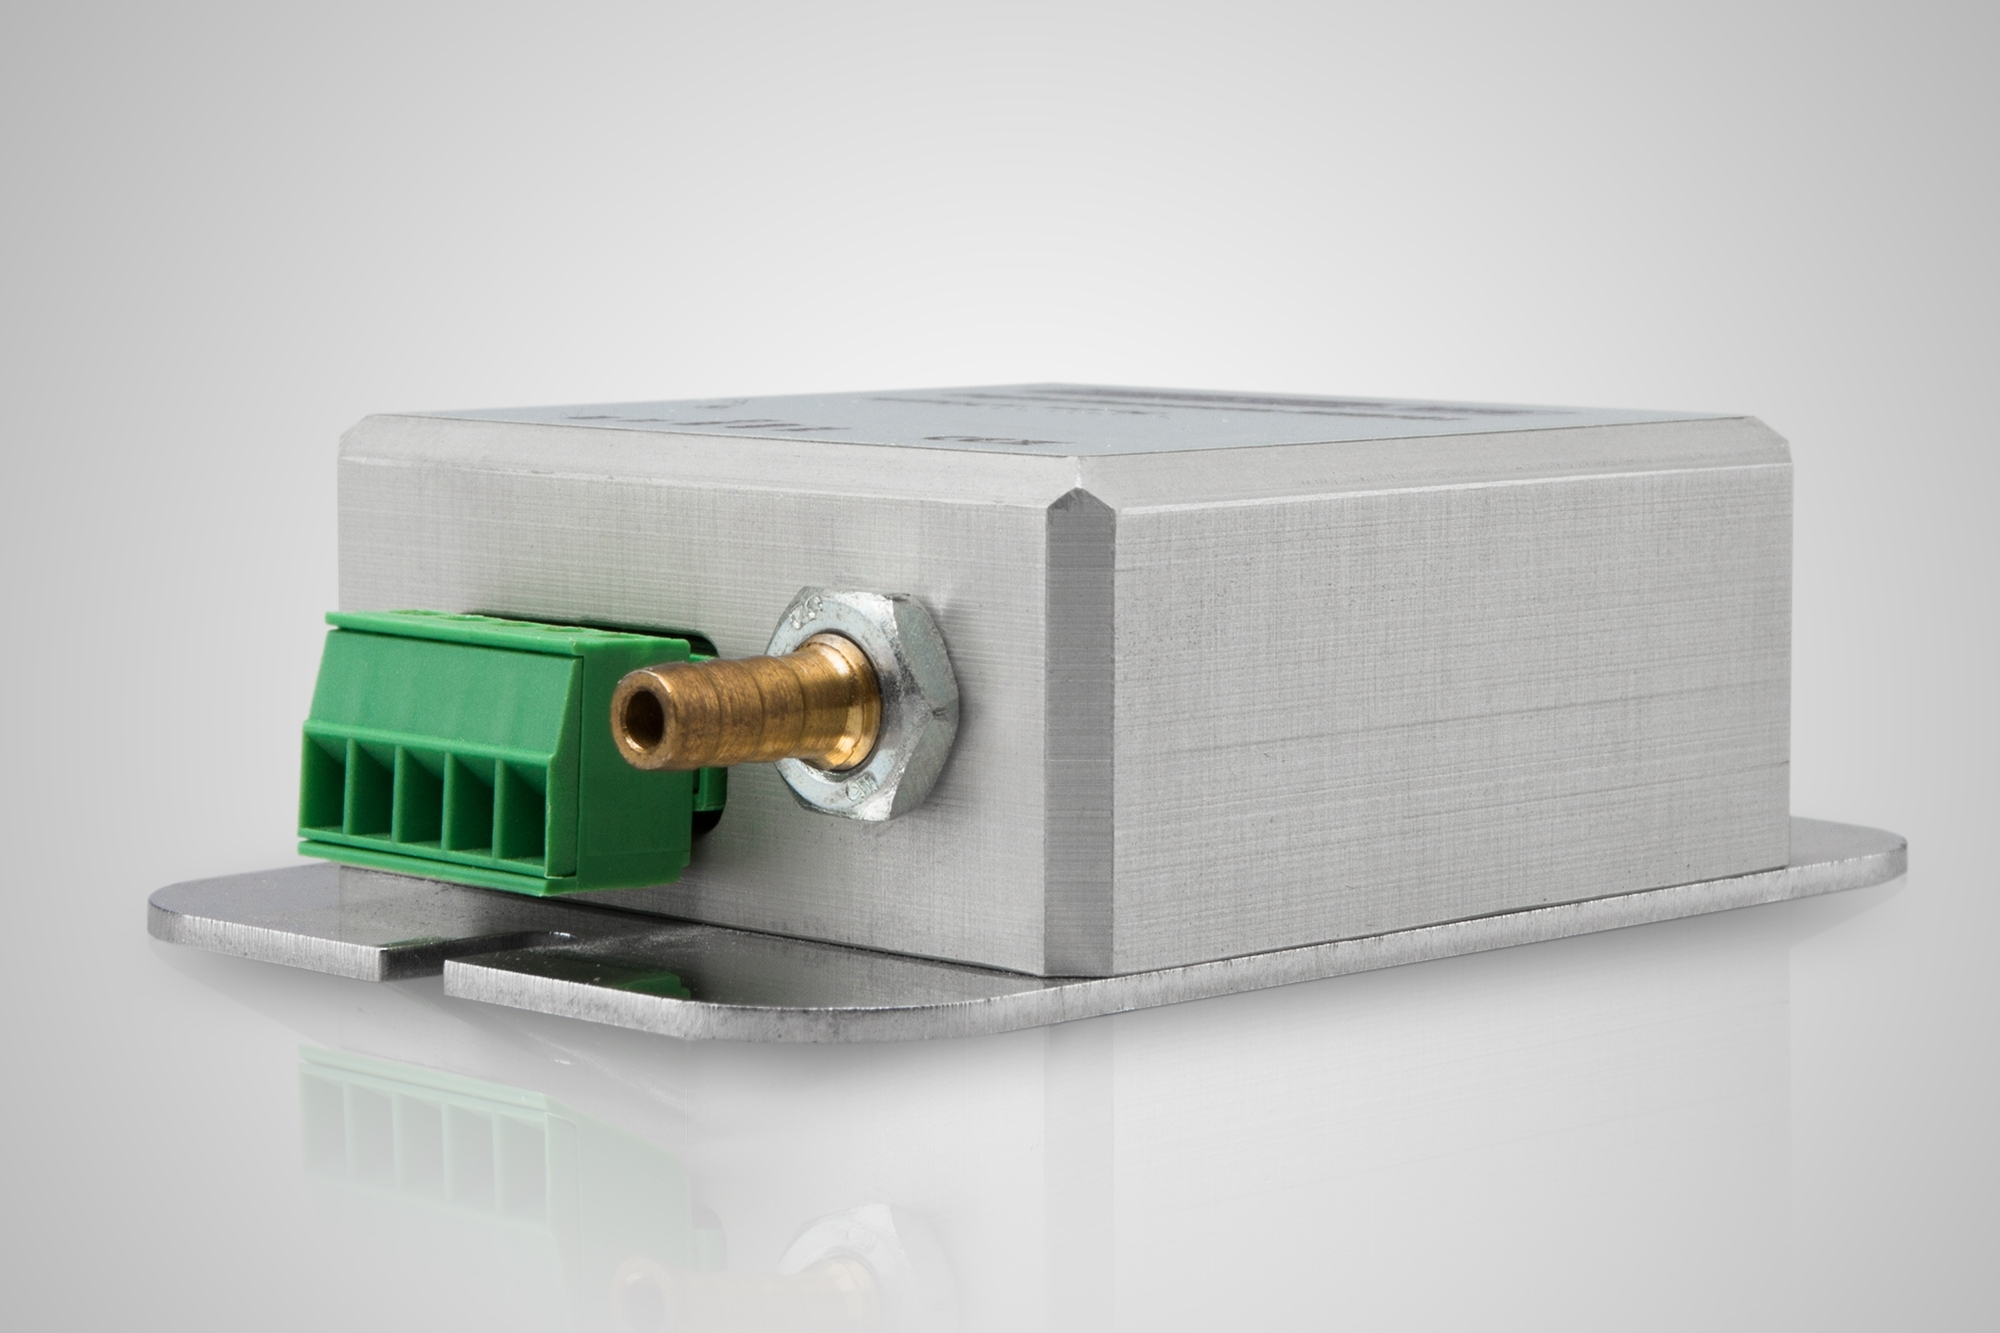 FUTURE PROOF High-accuracy triple redundant pressure sensor upgrade for IFR airports.